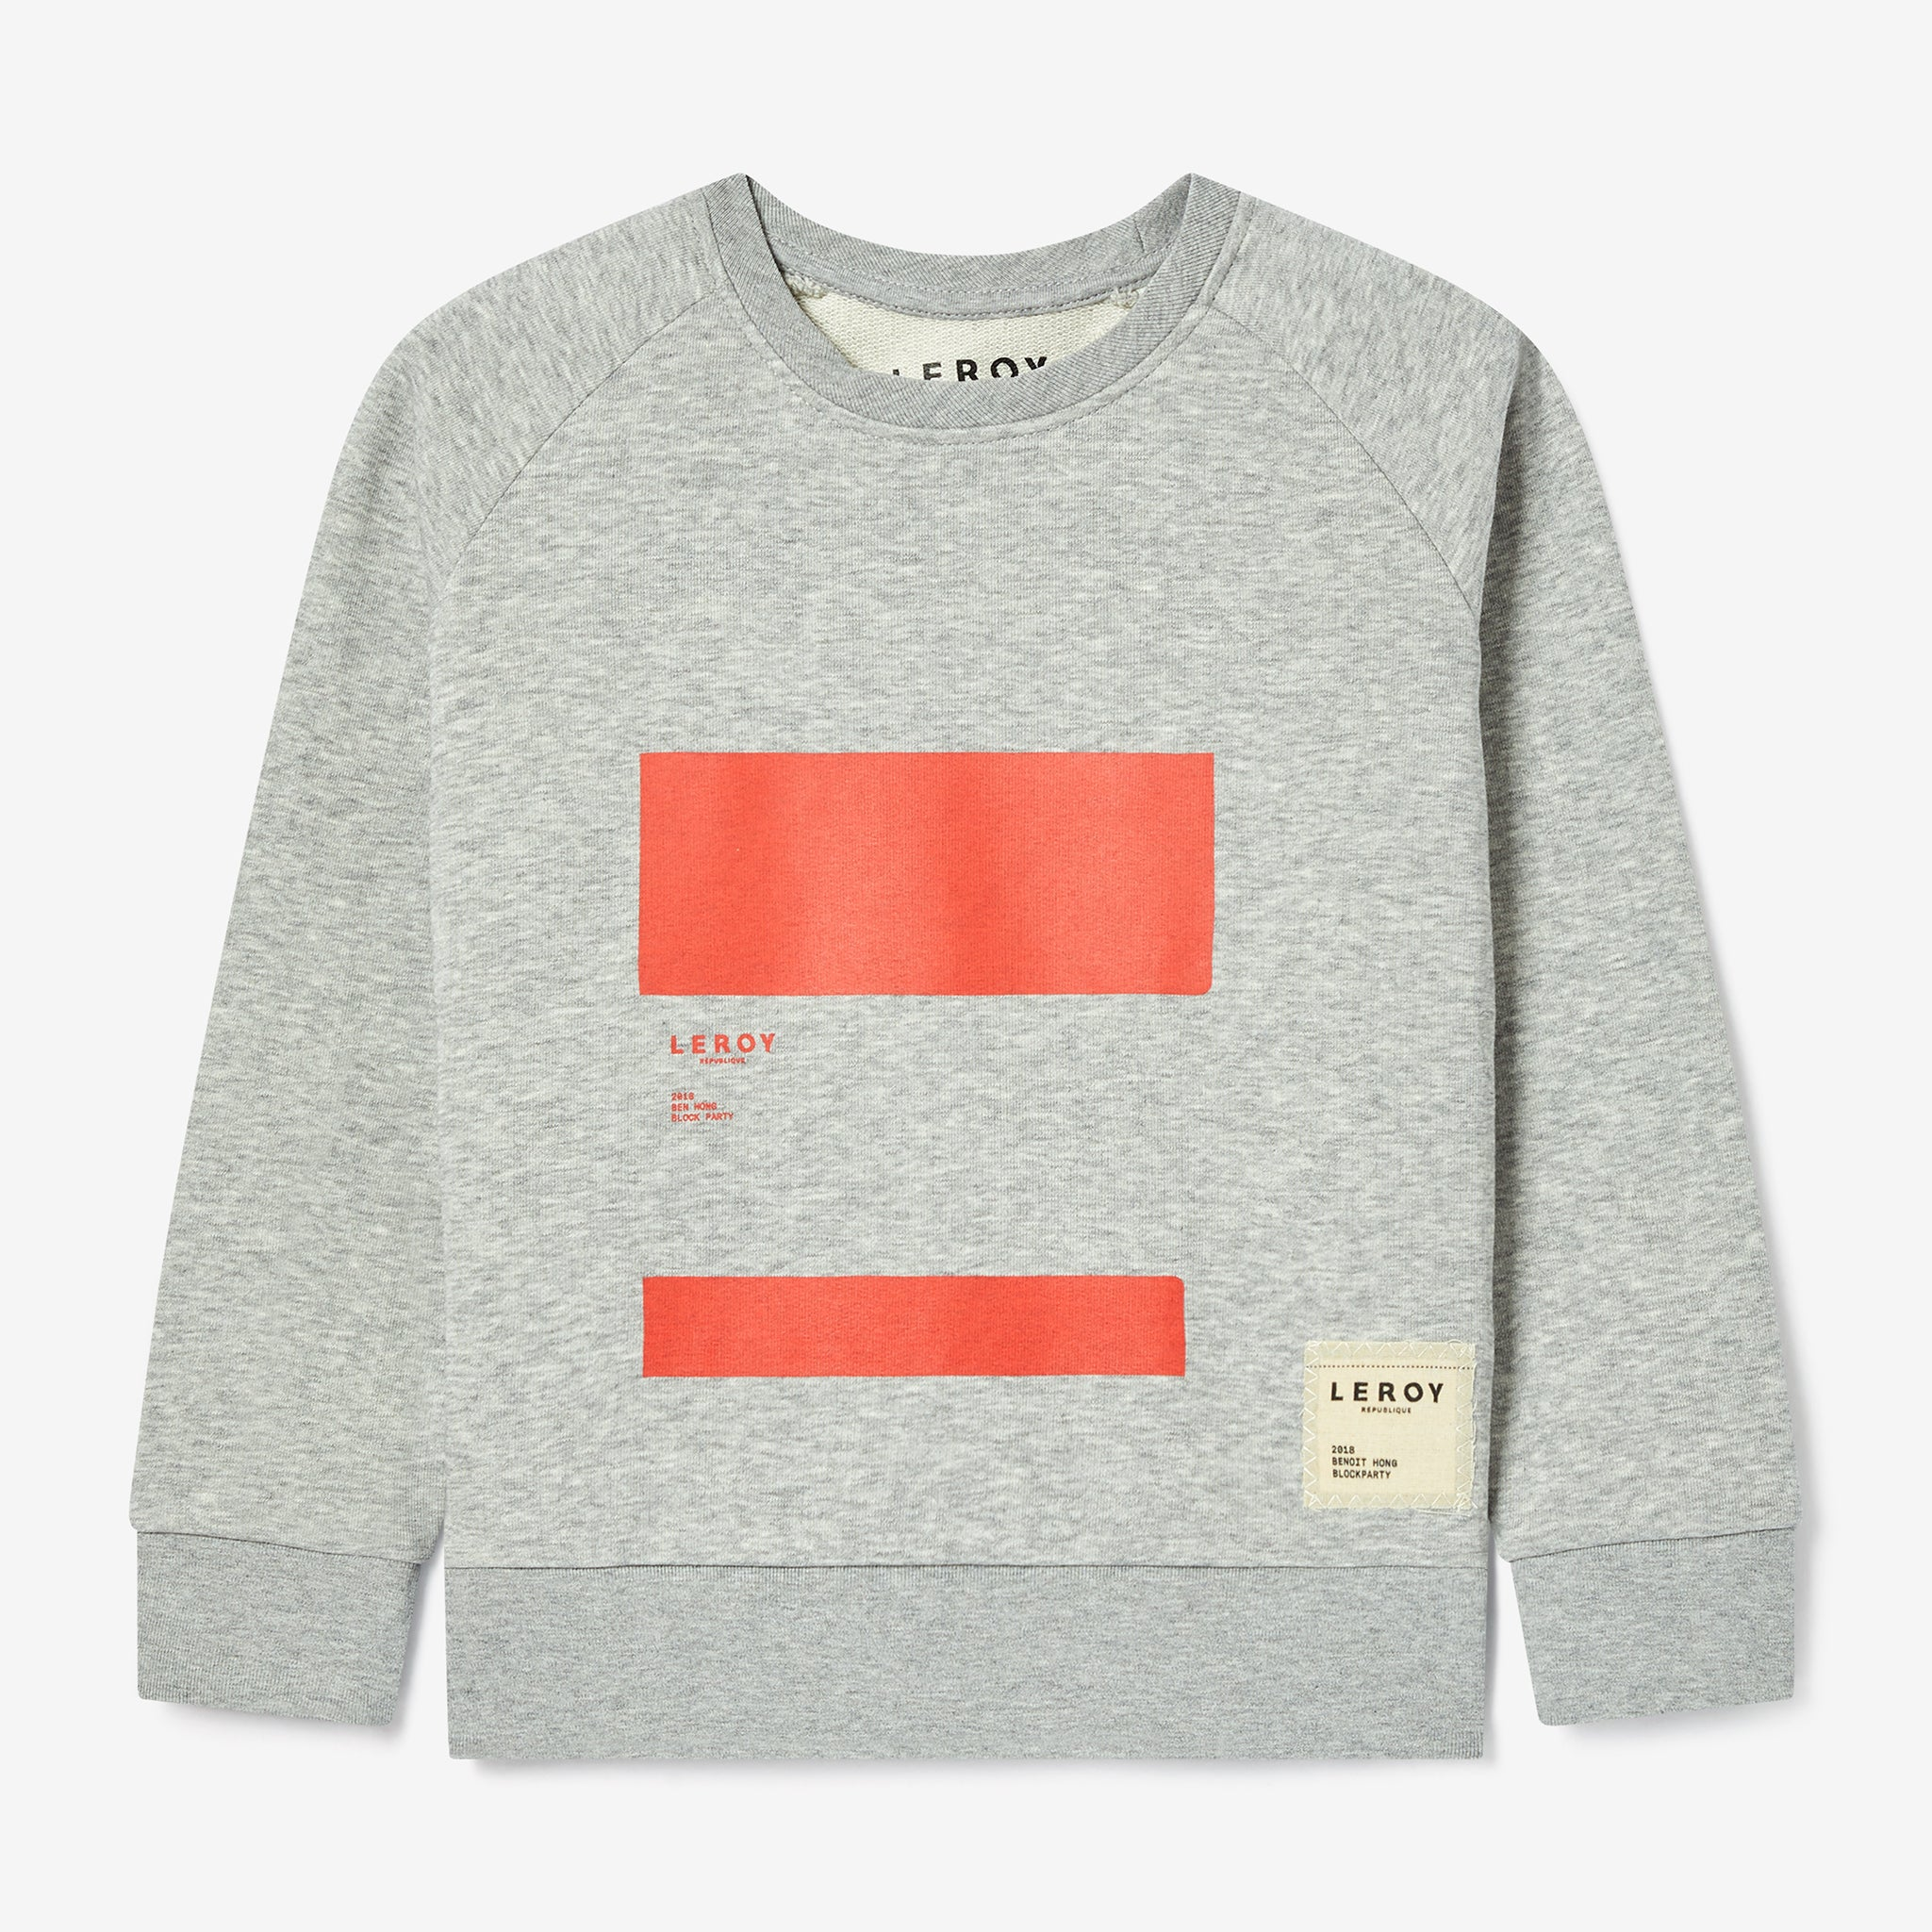 Ledge kid bright red crew neck